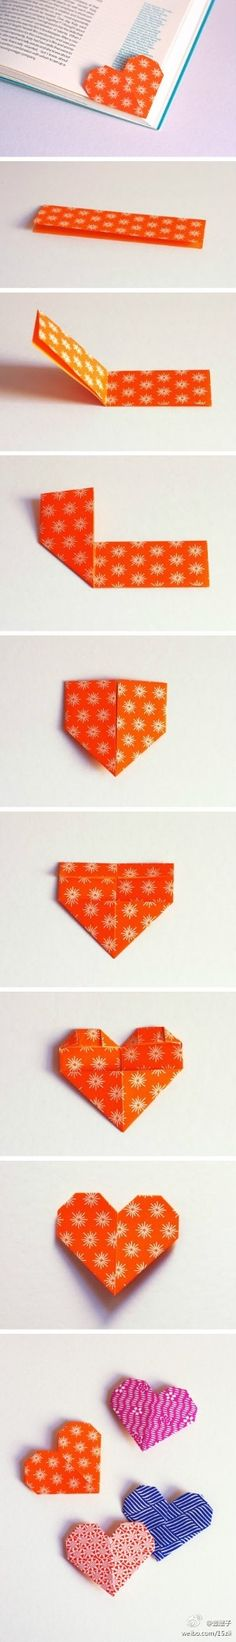 Folded Paper Heart Book Page Marker